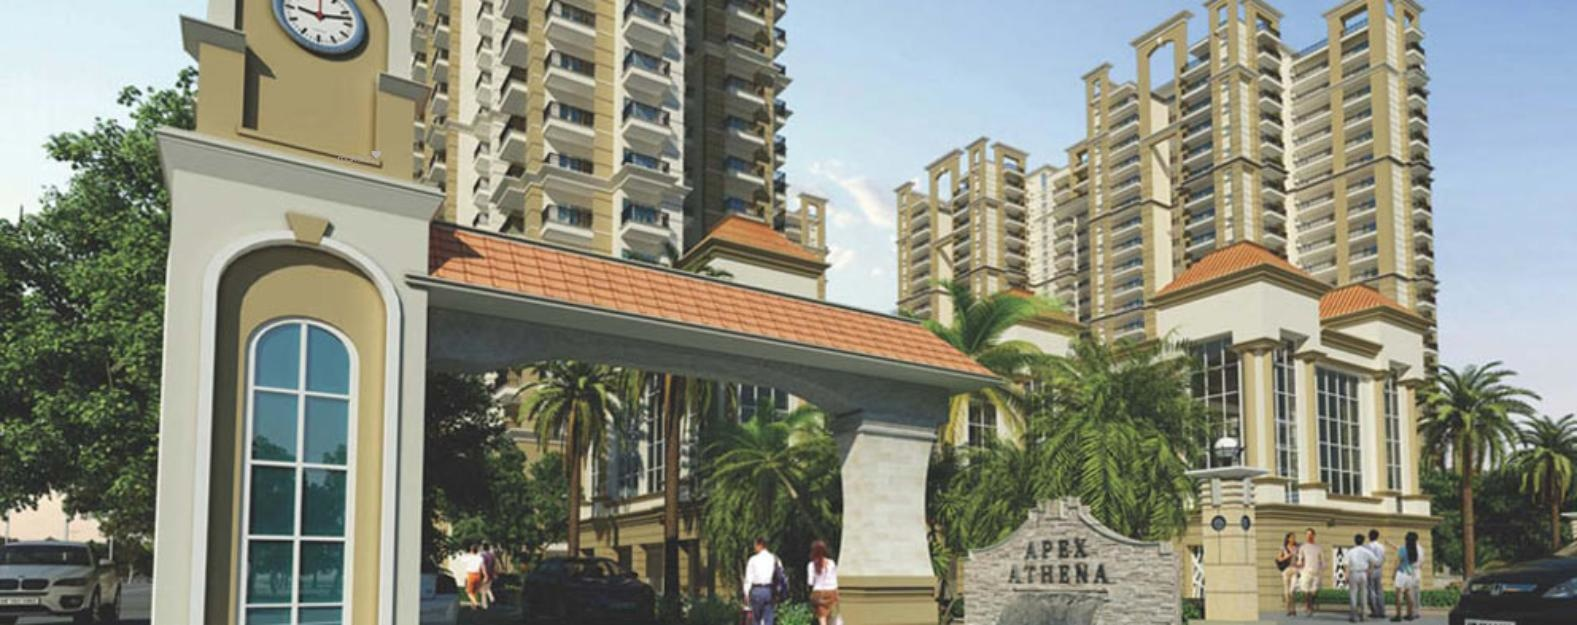 2099 sq ft 3BHK 3BHK+3T (2,099 sq ft) + Study Room Property By Ajmani Estates In Athena, Sector 75